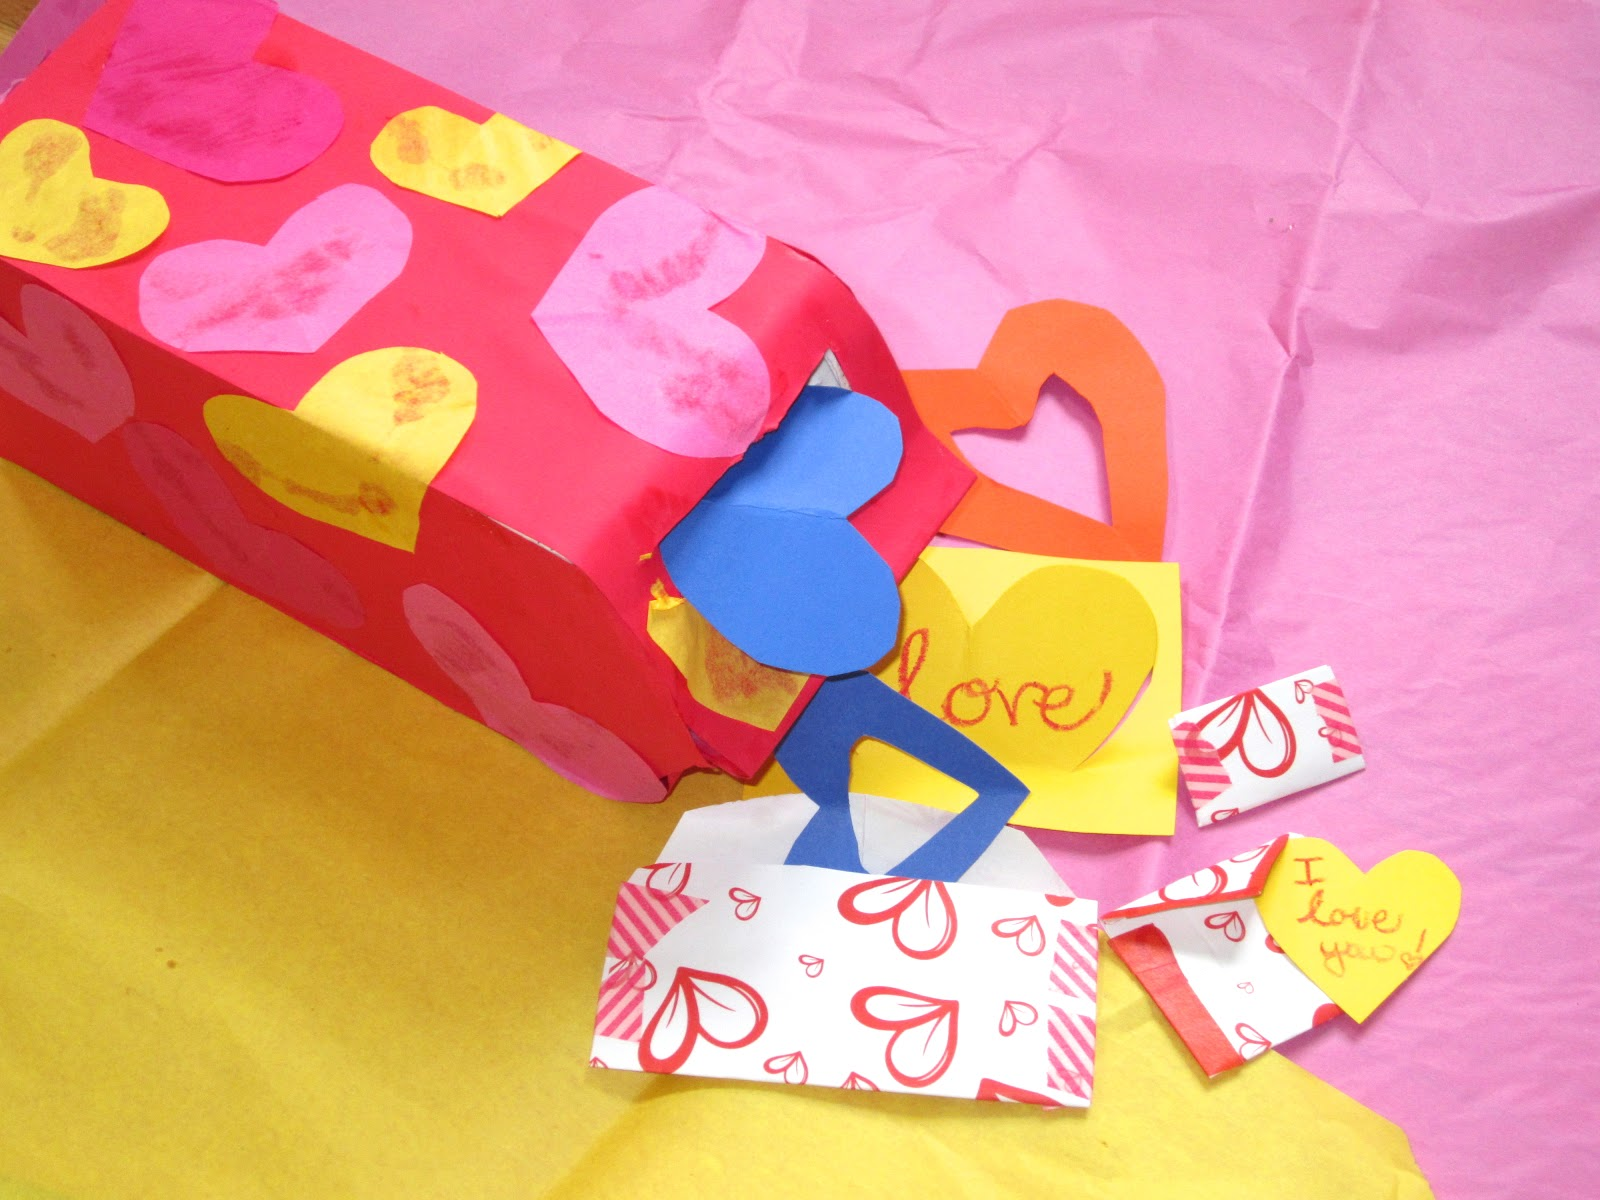 Supplies Tissue Paper Empty Milk Cartons Tissue Boxes Paper And . 1600 x 1200.Valentine Mailbox For Kids To Make